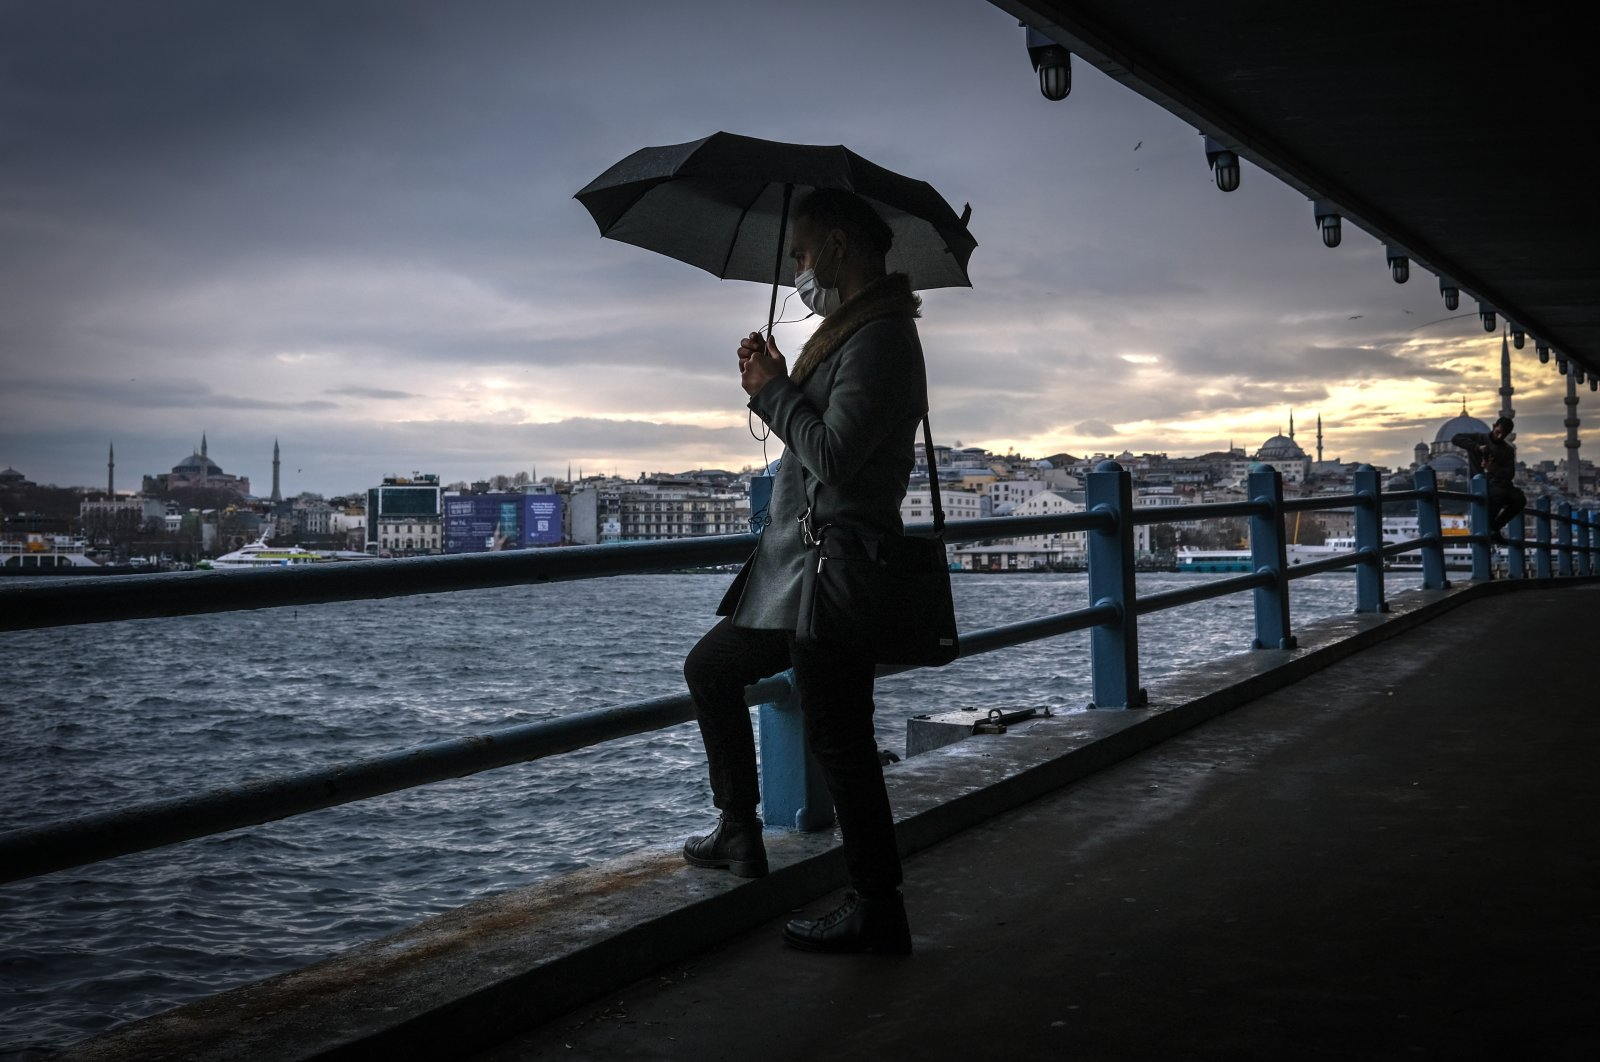 A man waits under the Galata Bridge with Hagia Sophia Grand Mosque (L) and Yeni (New) Mosque (R) in the background on a rainy day amid the ongoing coronavirus pandemic in Istanbul, Turkey, Dec. 28, 2020. (EPA Photo)